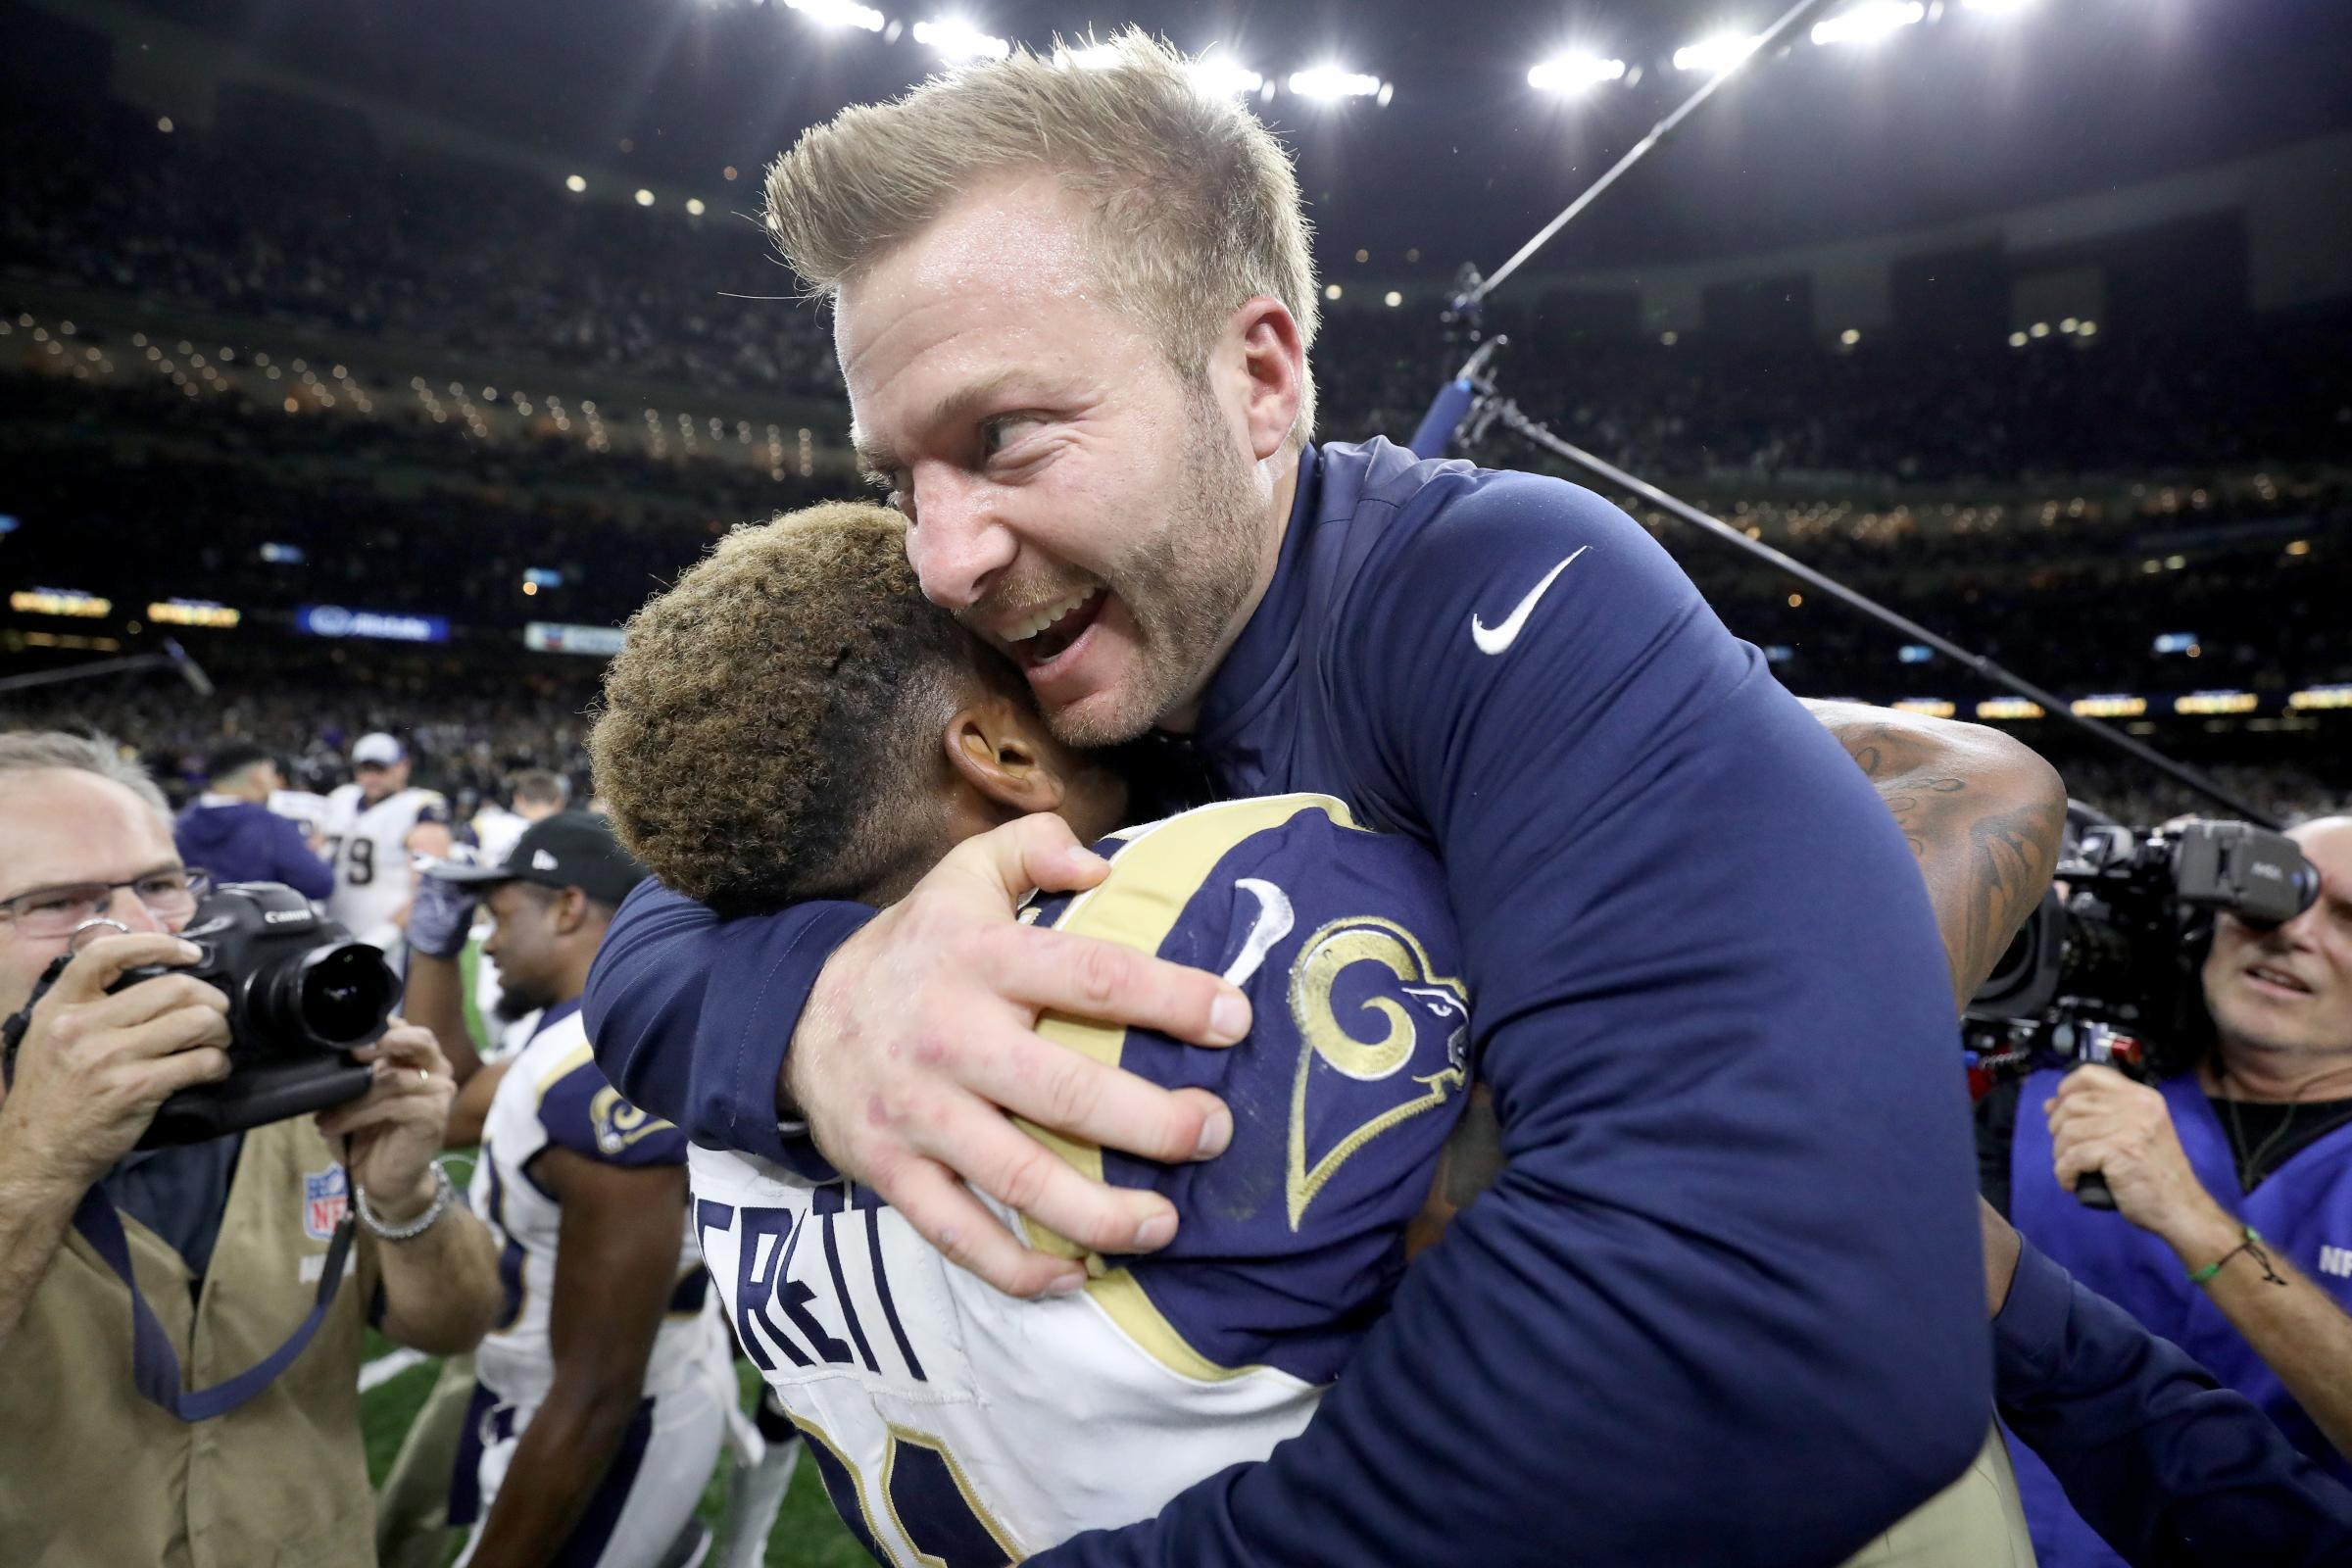 NEW ORLEANS, LOUISIANA - JANUARY 20: Head coach Sean McVay of the Los Angeles Rams celebrates Gerald Everett #81 after defeating the New Orleans Saints in the NFC Championship game at the Mercedes-Benz Superdome on January 20, 2019 in New Orleans, Louisia